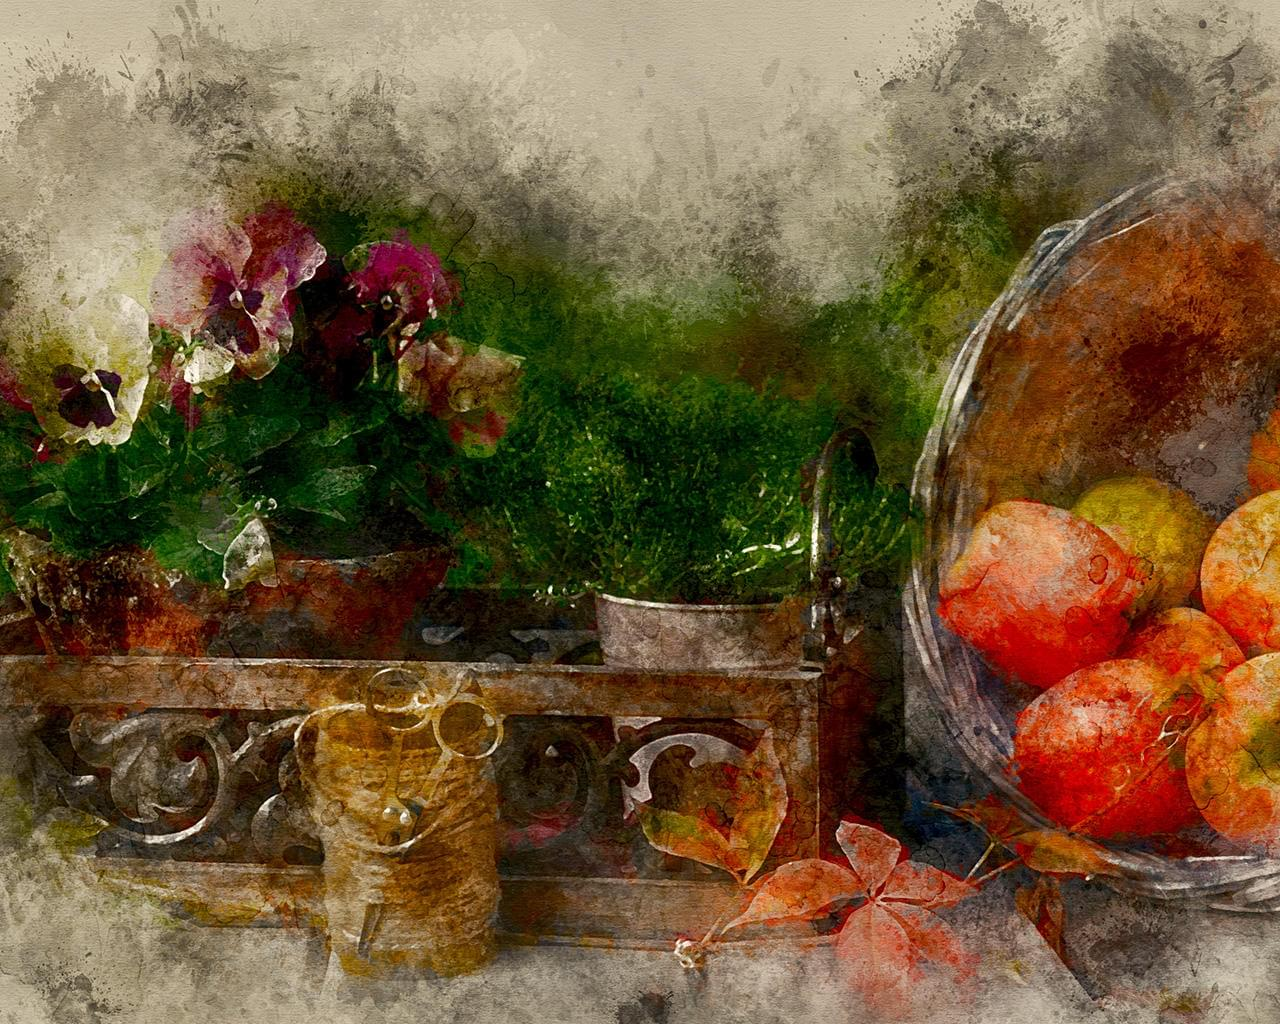 Creative Photo-Editing - High-End Artistic Effect - Watercolor Expressive Painting by CrArt - 111472